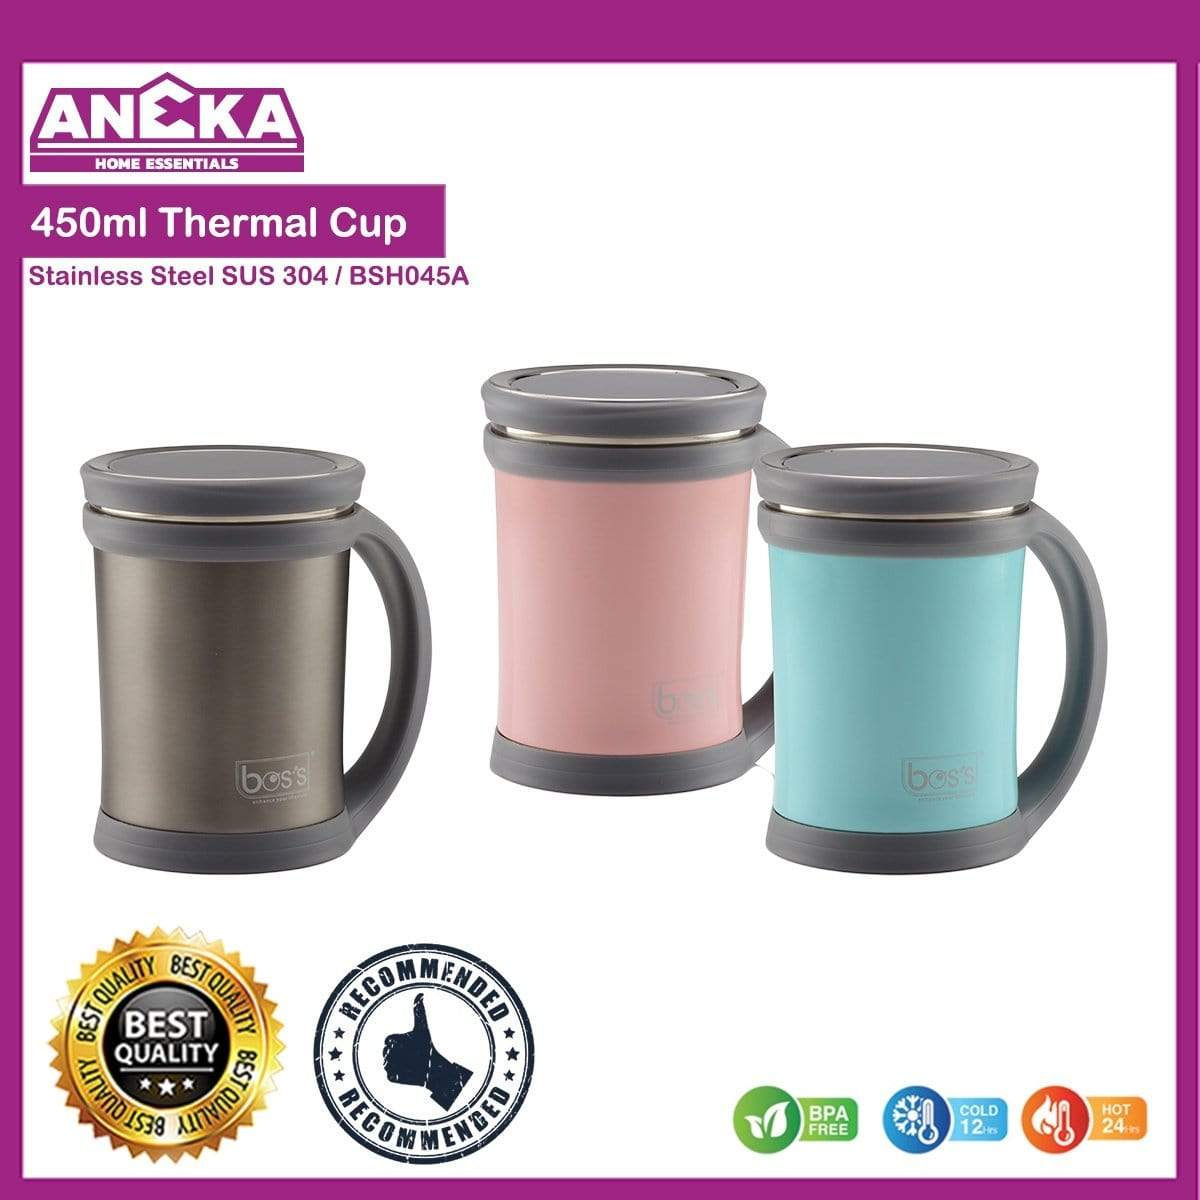 BOS'S 450ml S/S Thermal Cup (BSH045A)